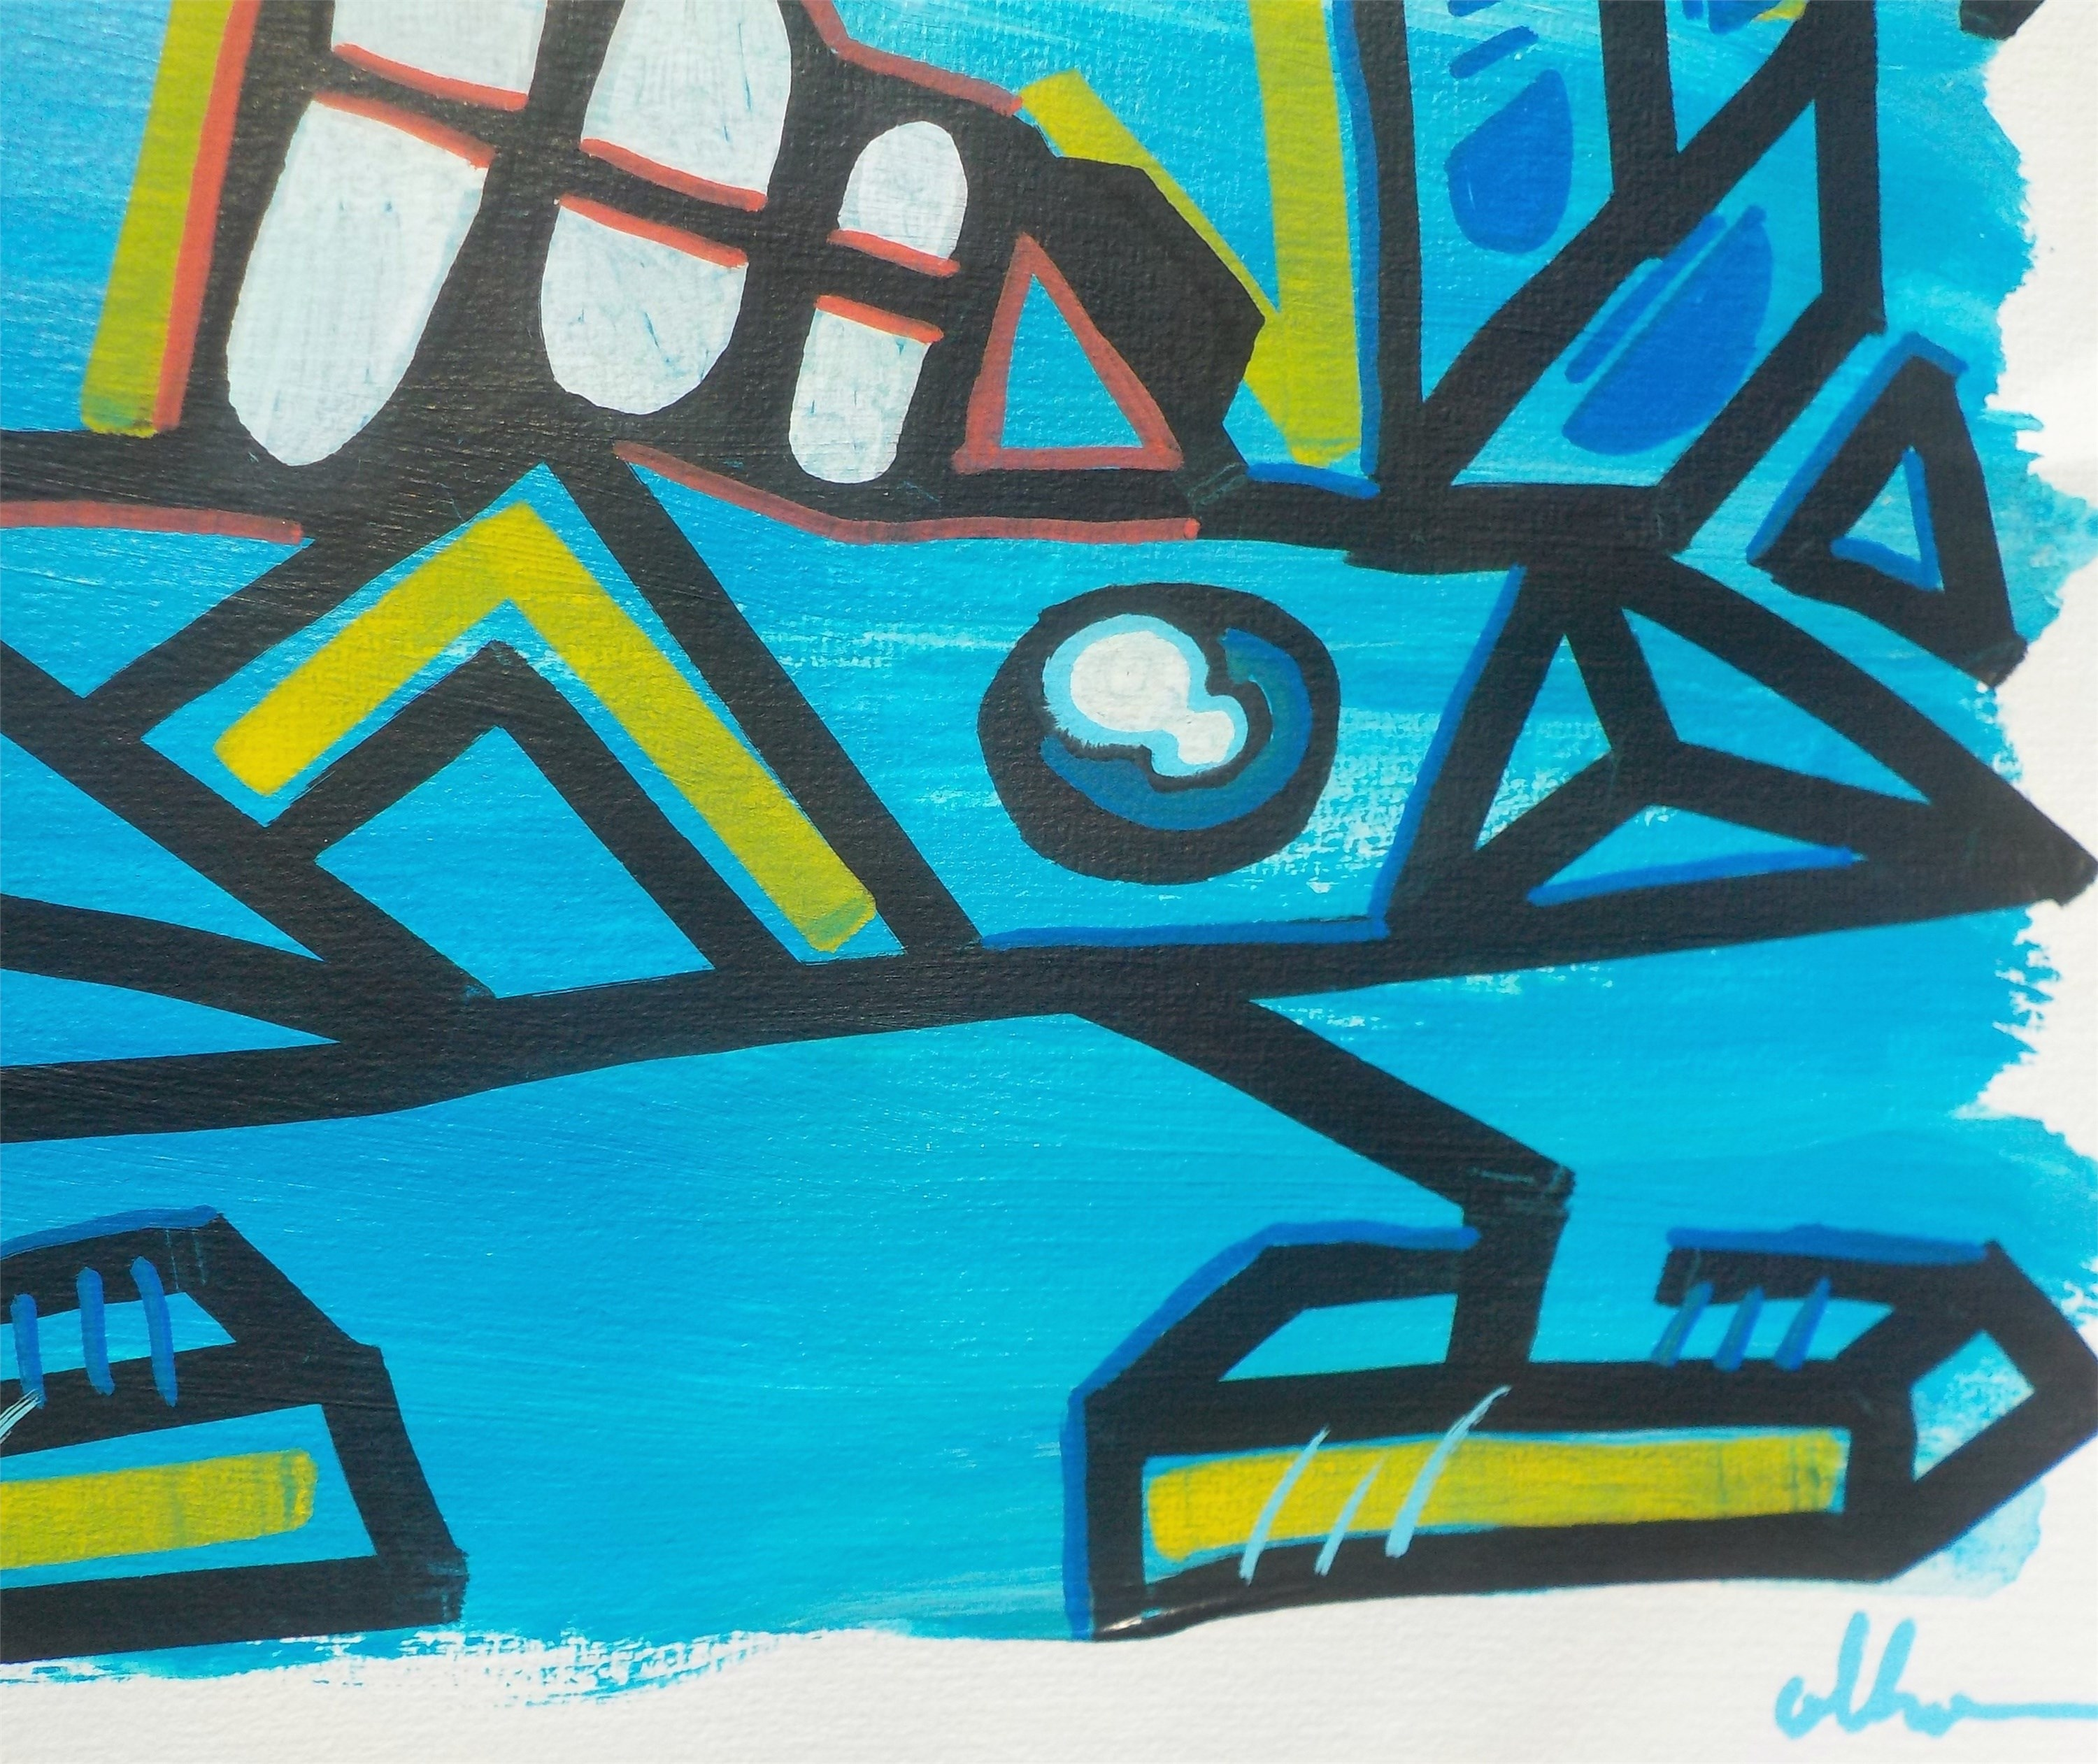 Big Foot Like a bIRD, original Abstract Acrylic Painting by OLHO OLHO